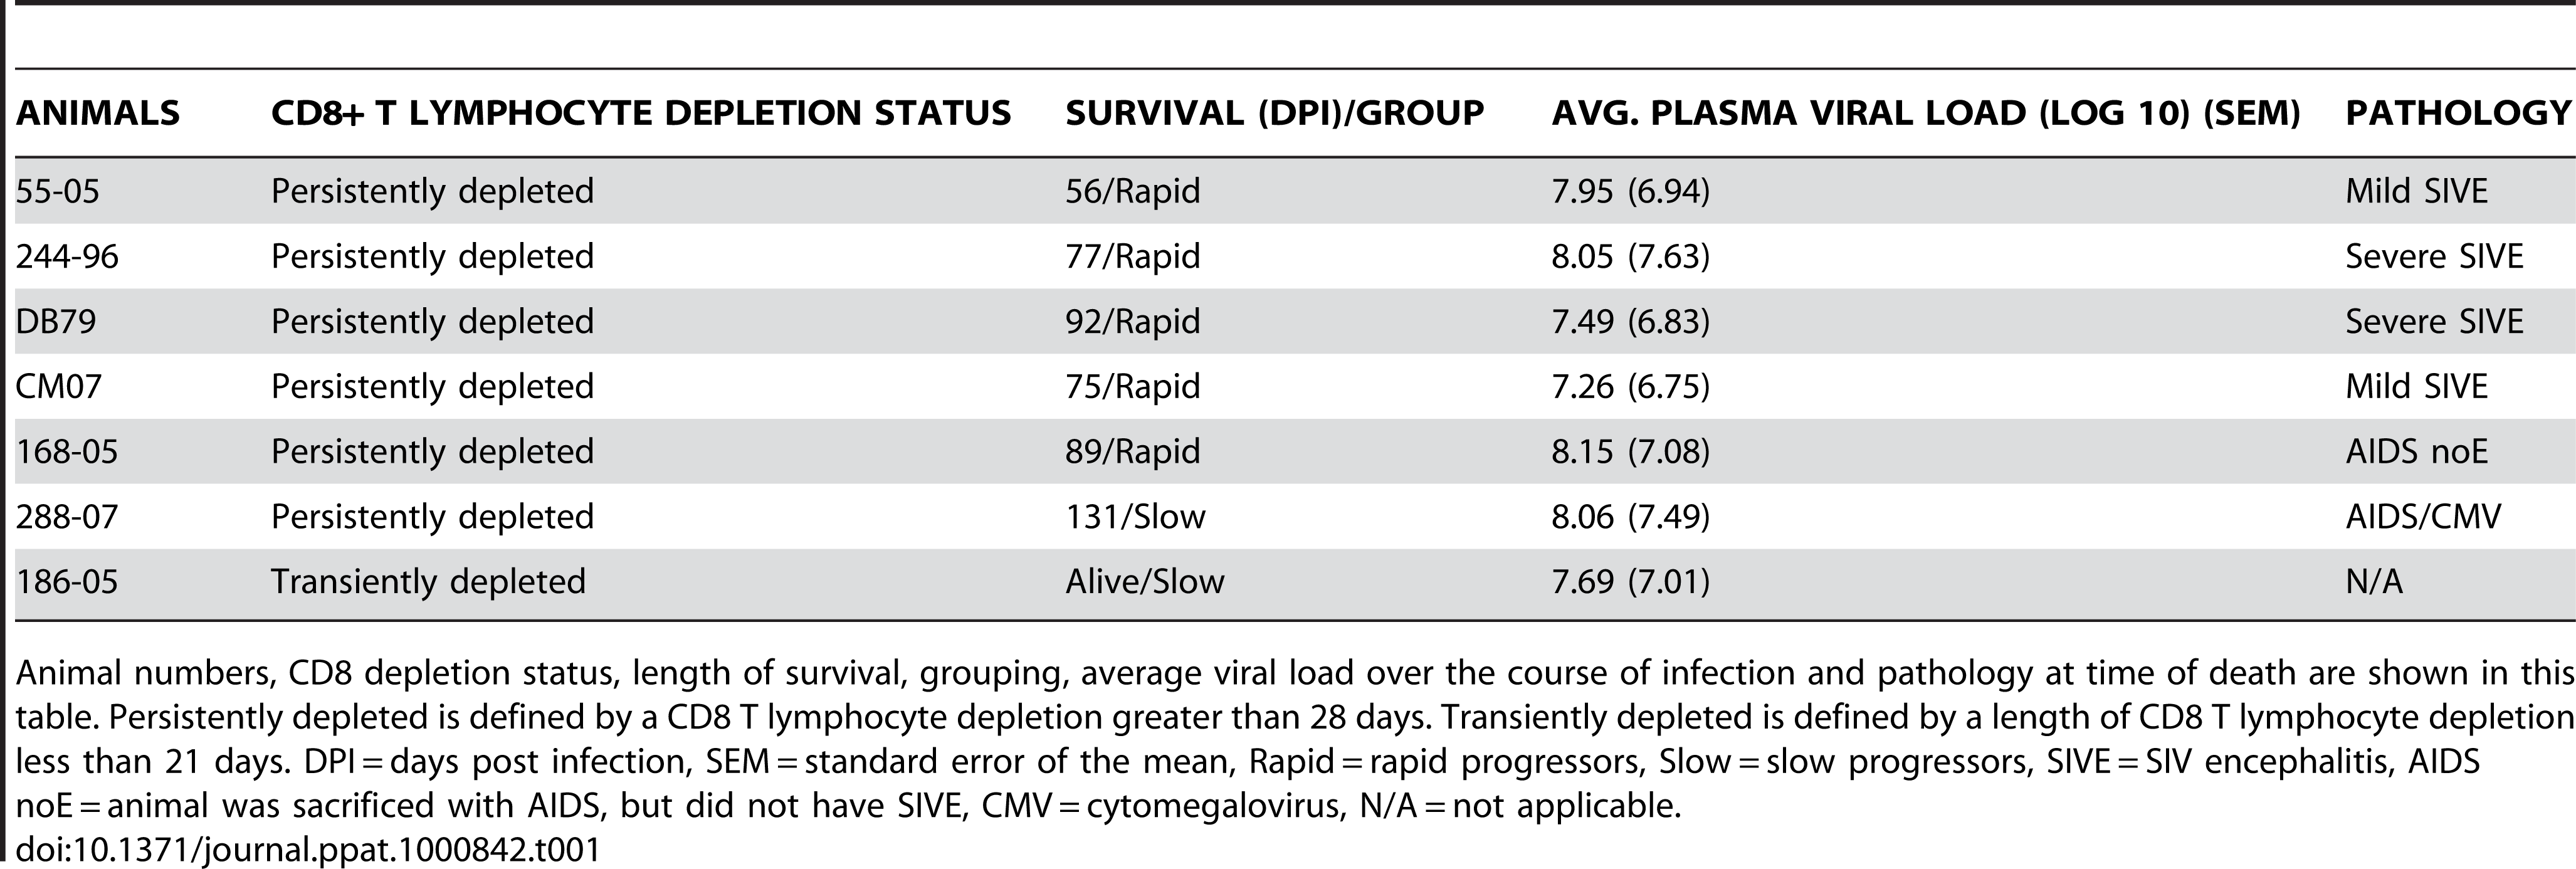 SIV CD8+ T lymphocyte depleted animals used in the study.